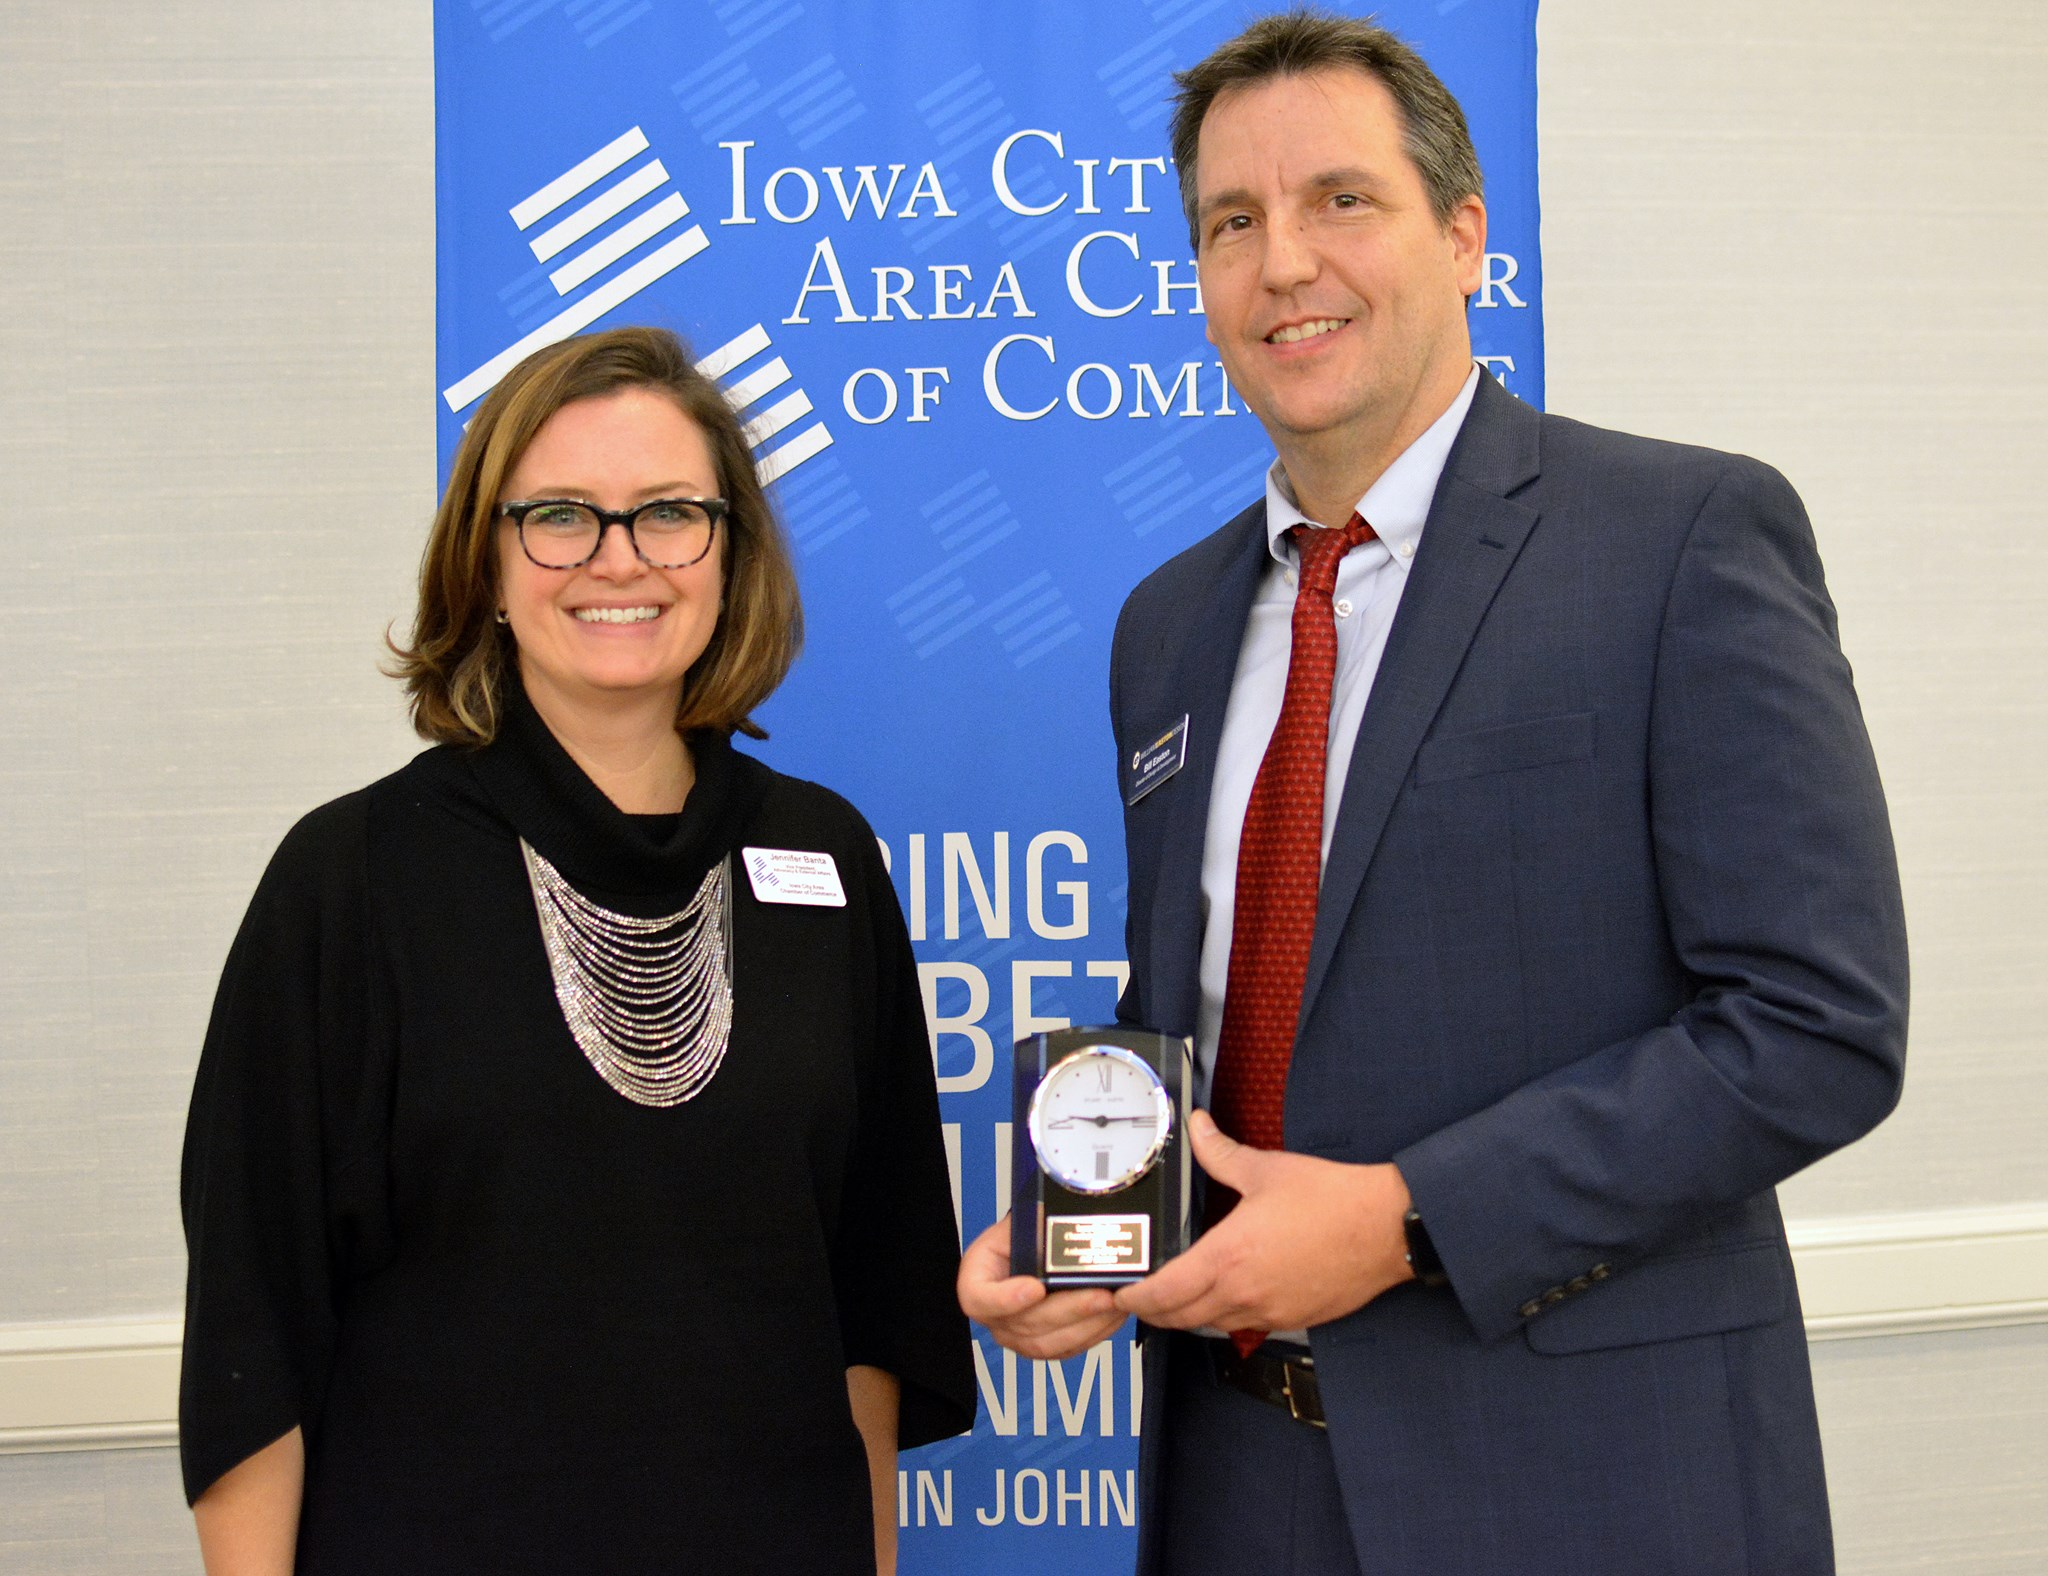 Photography of Iowa City Area Chamber of Commerce 2018 Ambassador of the Year William Easton and Jennifer Banta